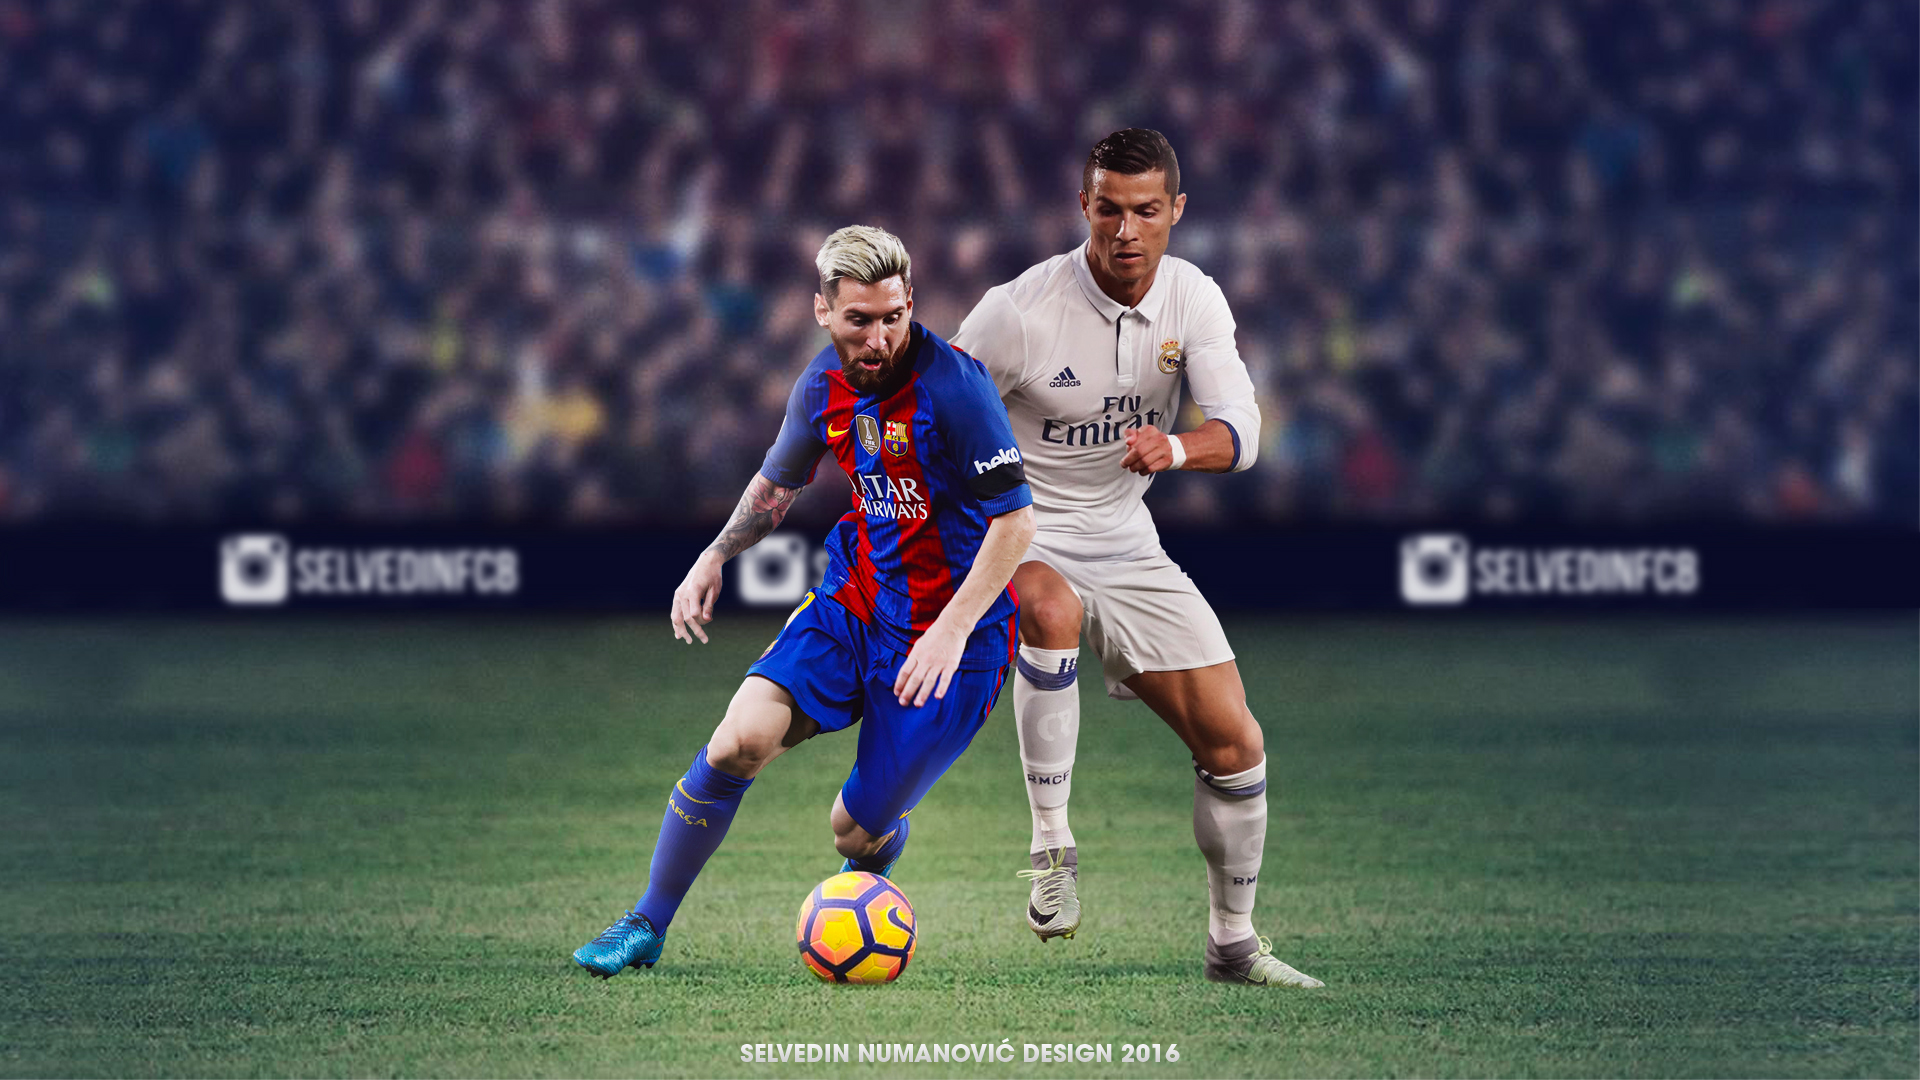 messi vs ronaldo hd wallpaper by selvedinfcb on deviantart